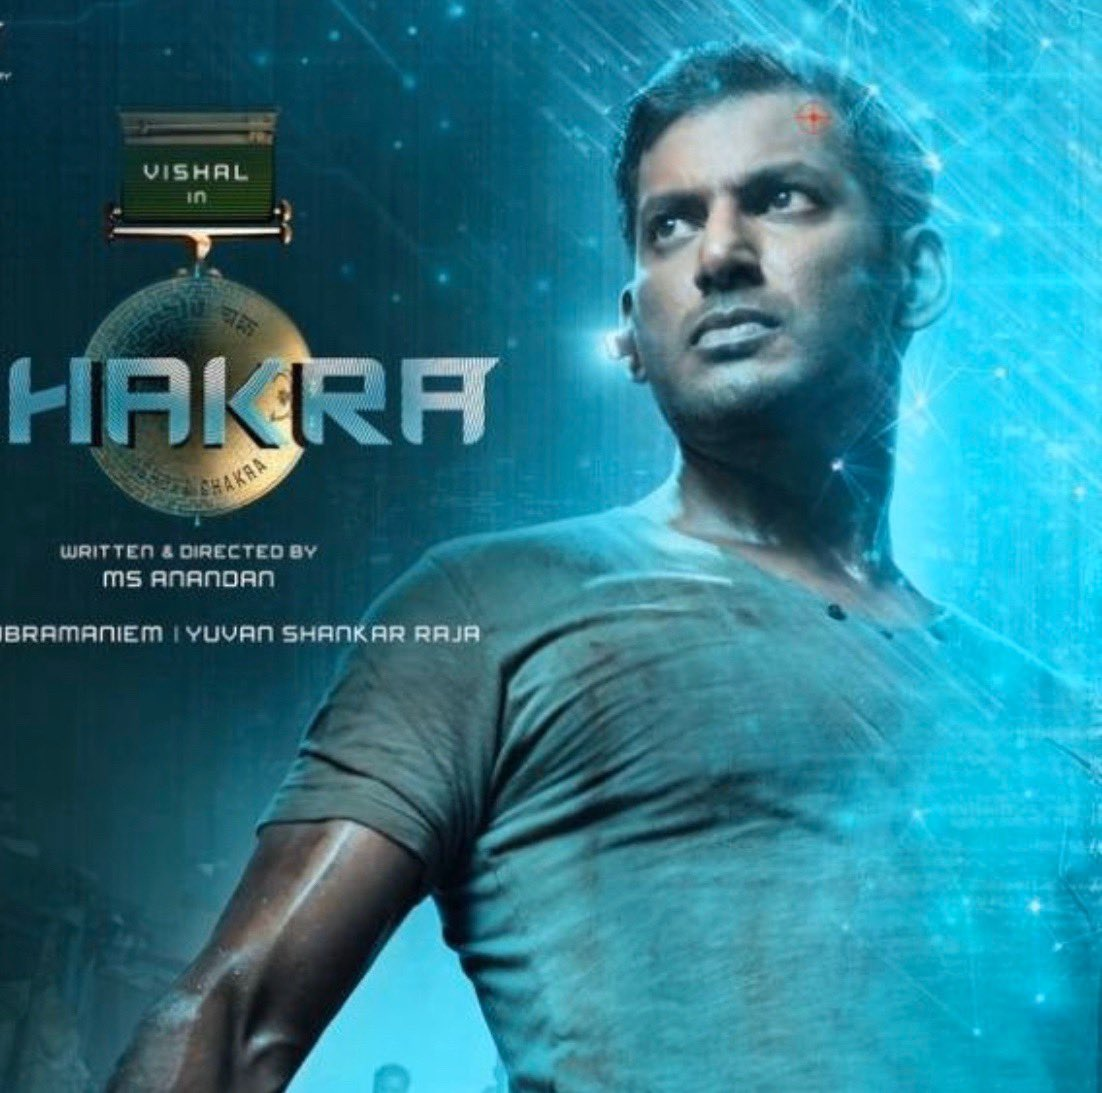 After trending glimpse @VishalKOfficial 's sensational #ChakraTeaser will be out this Saturday and it will be released by 4 celebrities from 4 different languages   @ReginaCassandra @ShraddhaSrinath @thisisysr @manobalam @srushtiDange @iamrobosankar @AnandanMS15  @johnsoncinepro https://t.co/jlJJ0tx0tB